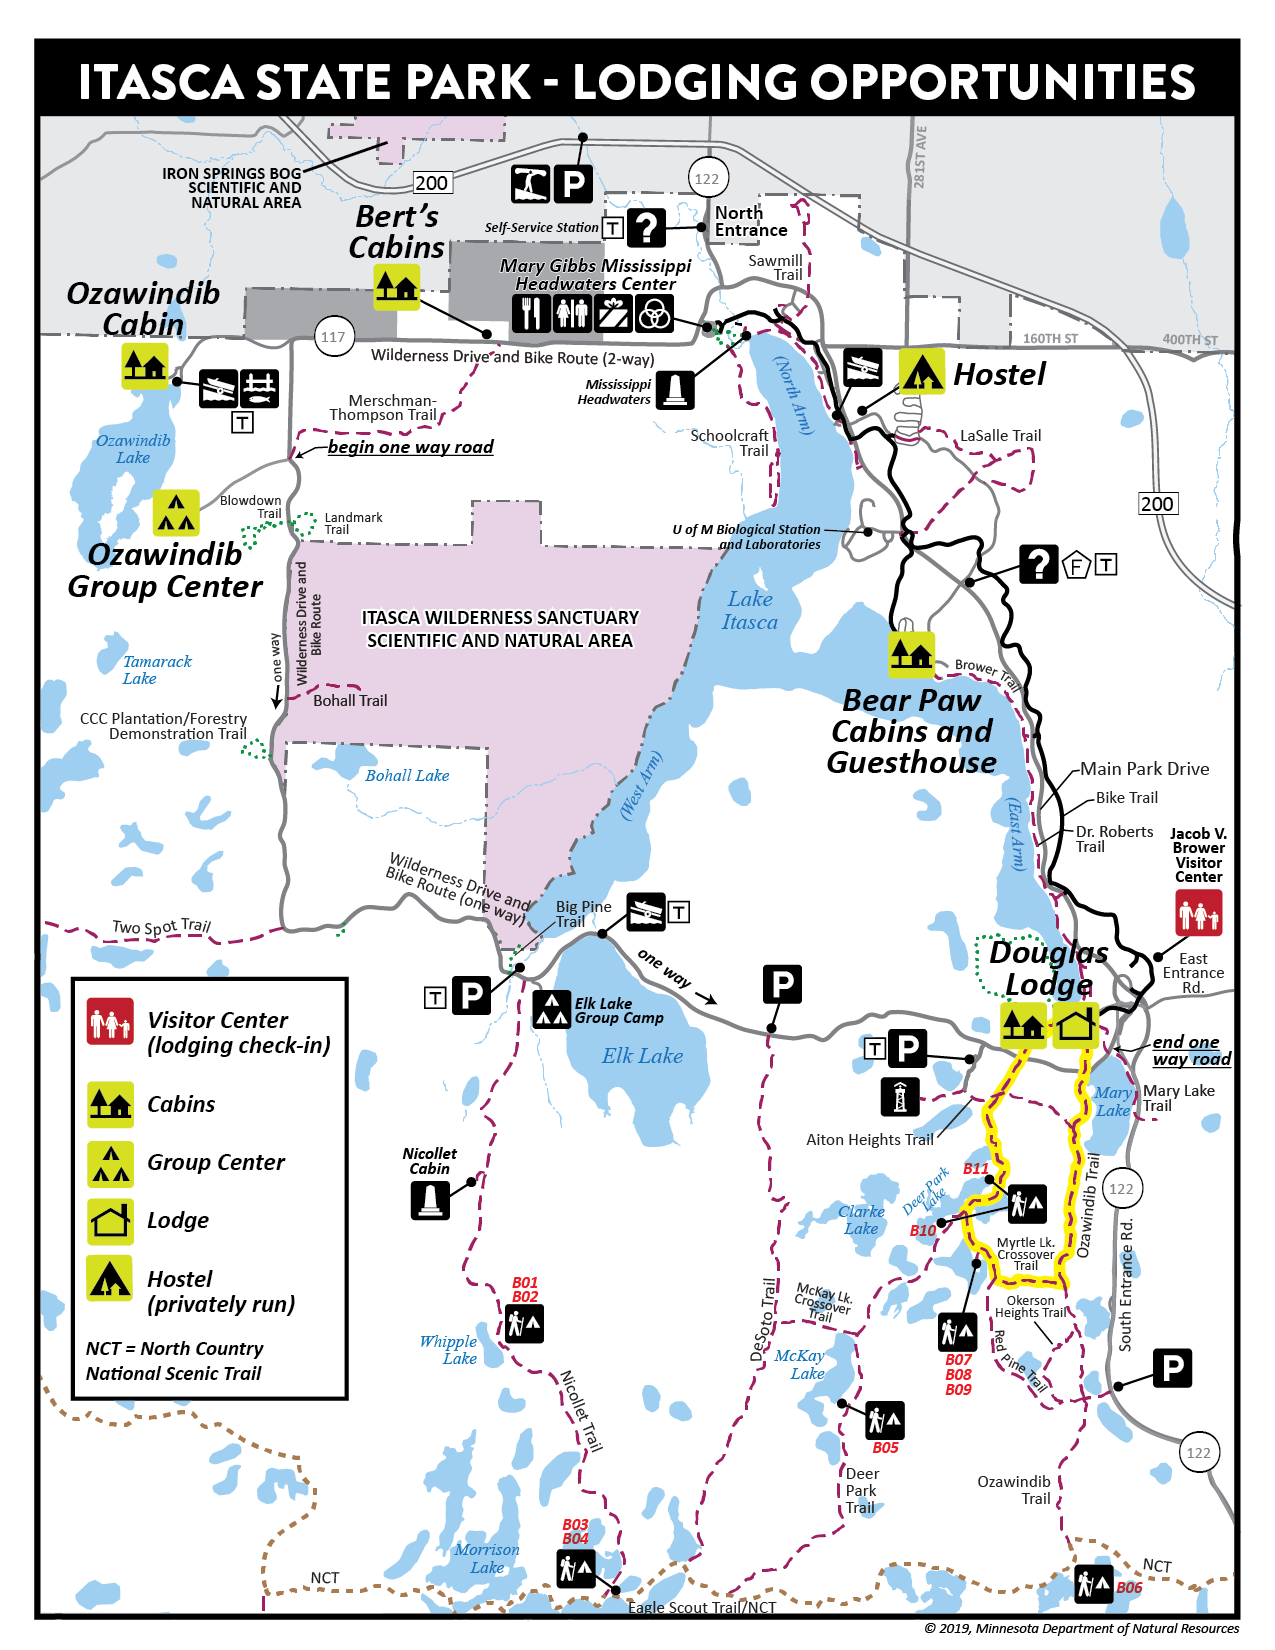 Itasca State Park lodging map